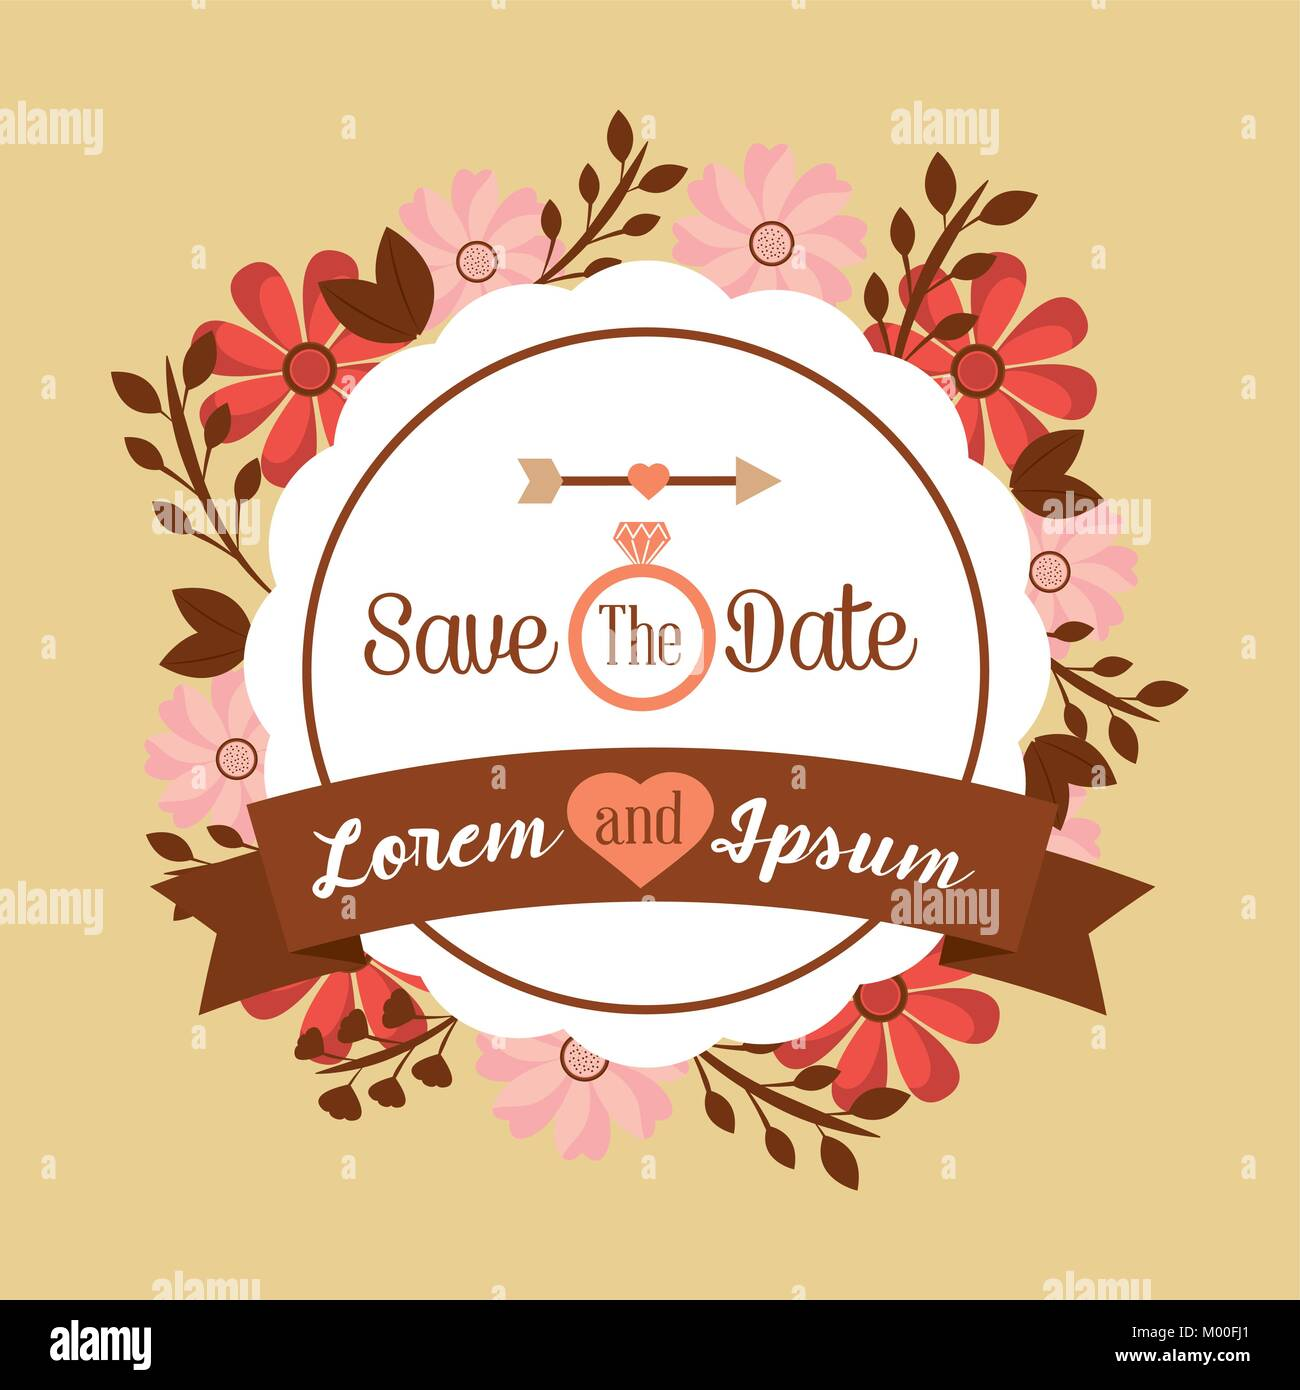 save the date poster floral invitation wedding banner stock vector image art alamy https www alamy com stock photo save the date poster floral invitation wedding banner 172115945 html